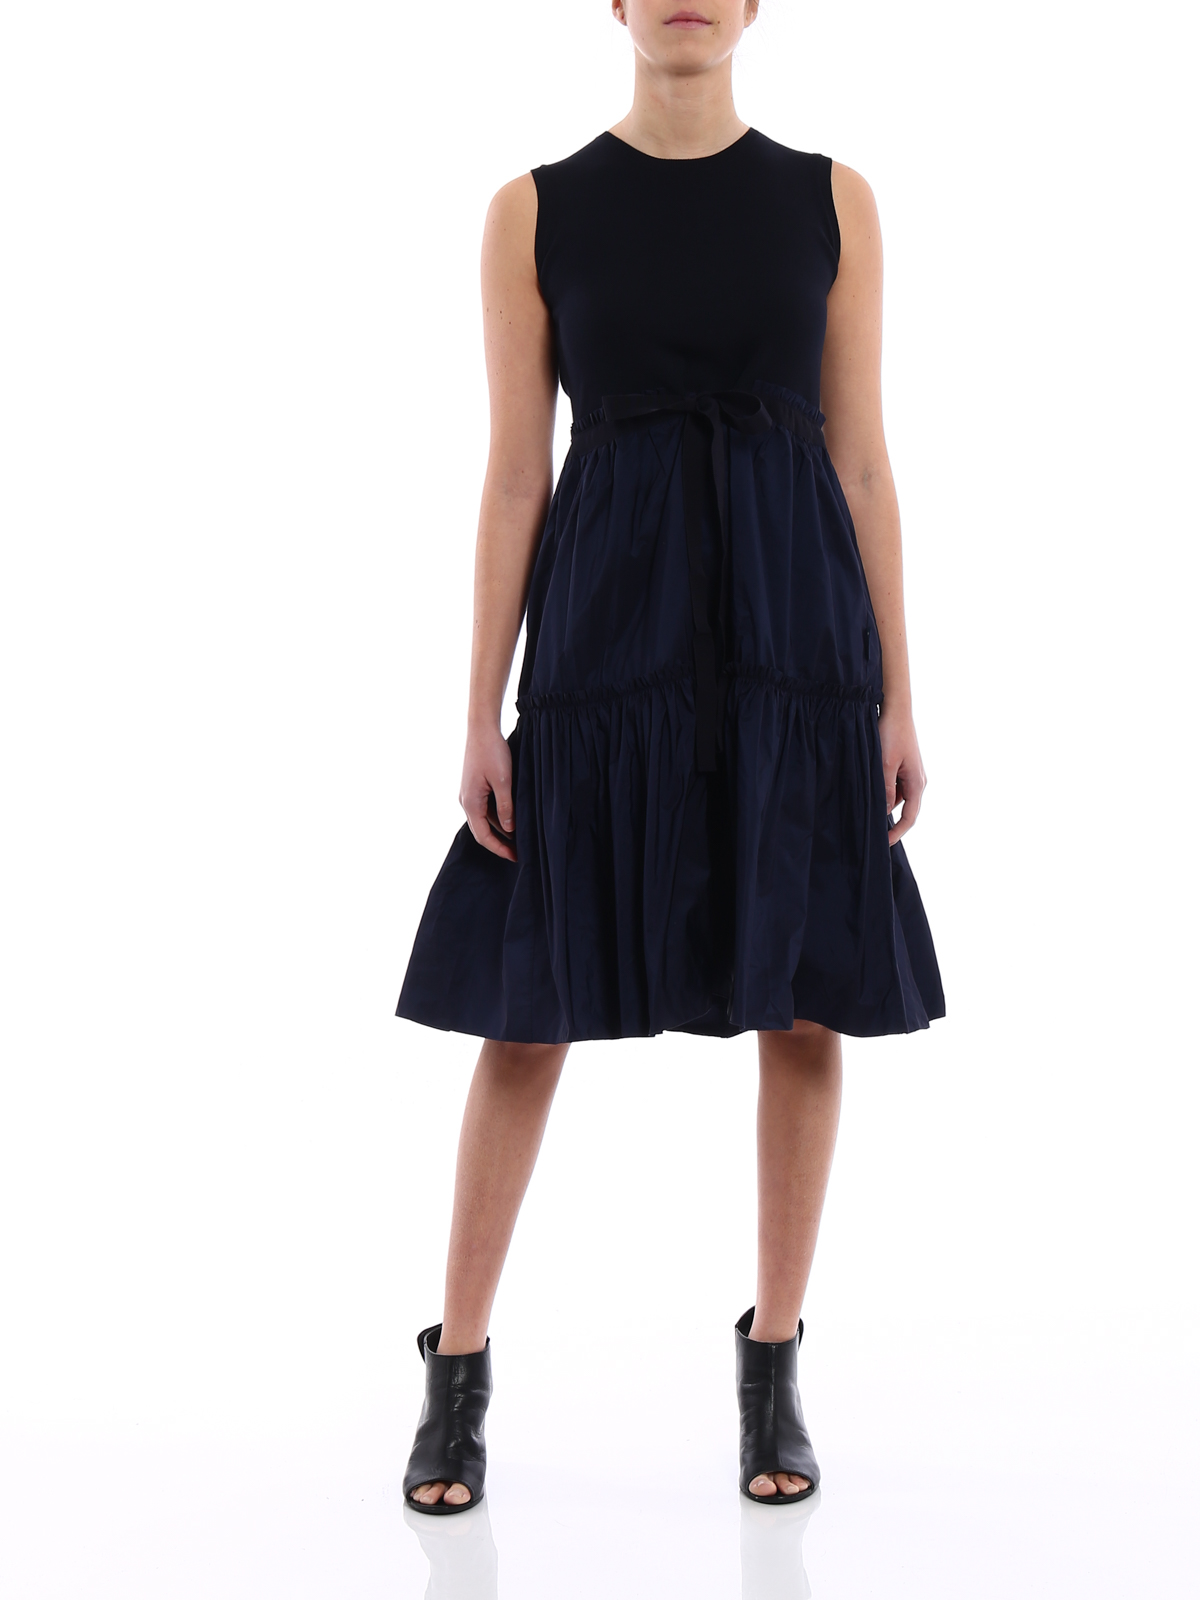 Technical Fabric And Cotton Dress By Moncler Knee Length